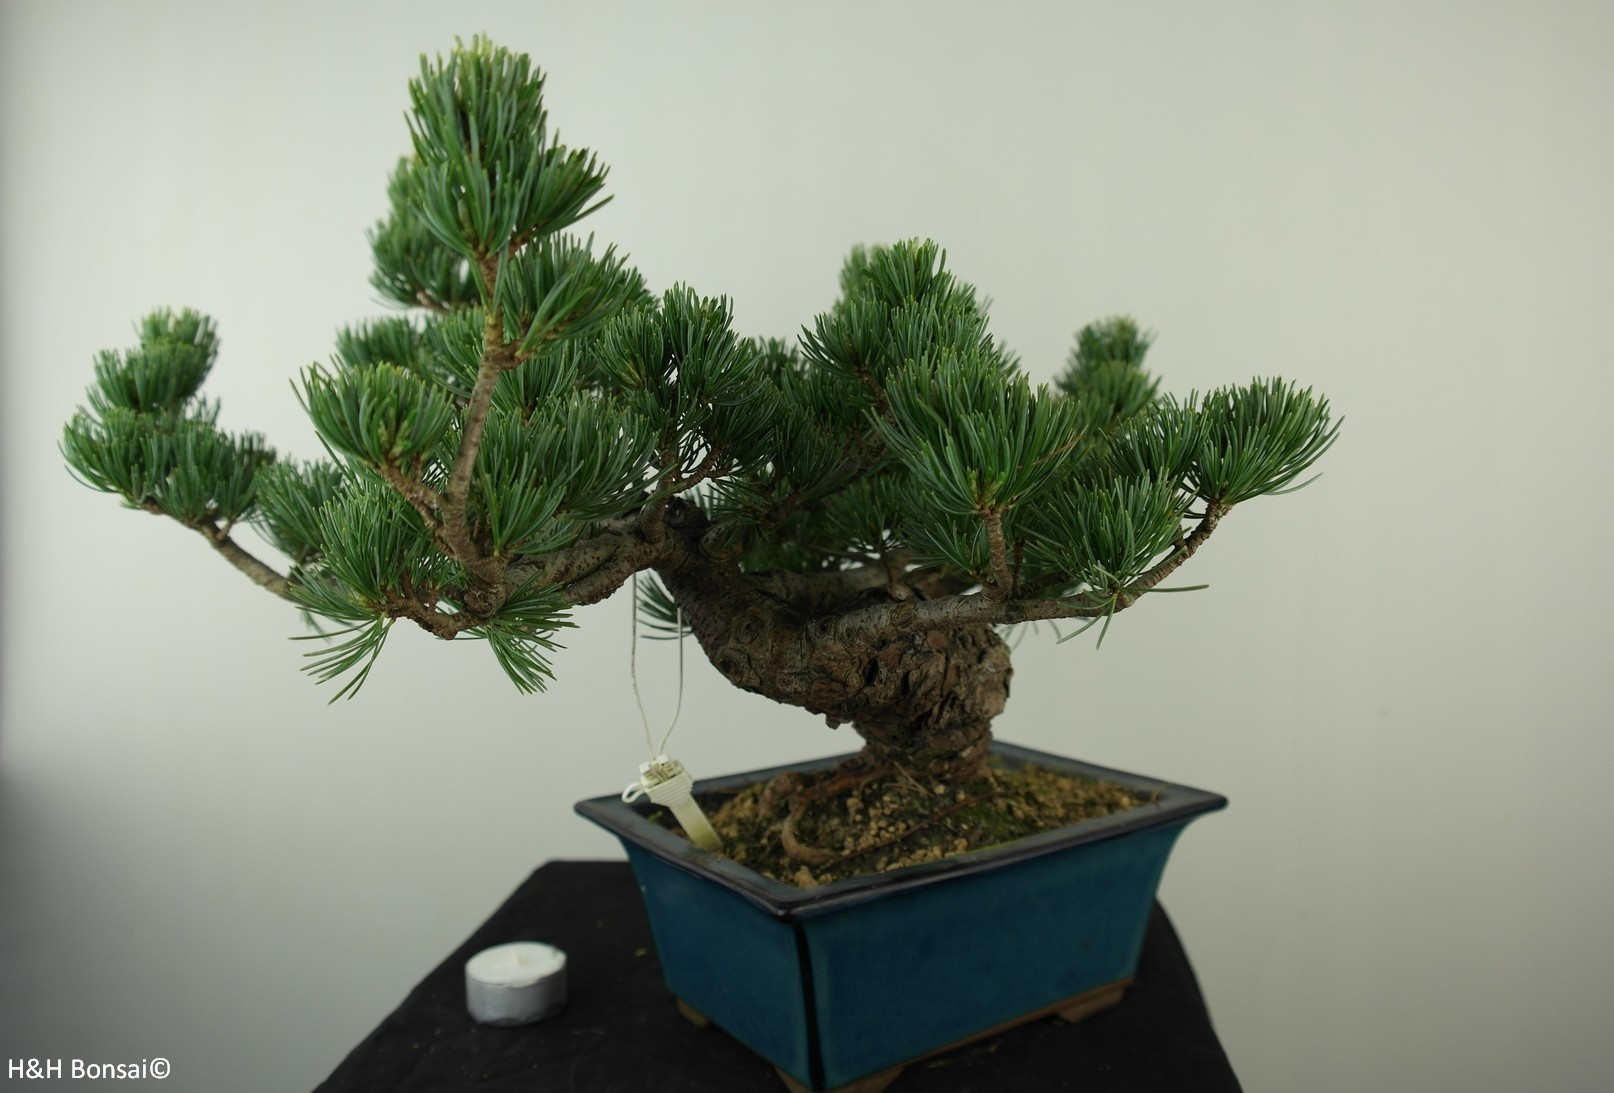 Bonsai Japanese White Pine, Pinus pentaphylla, no. 7807